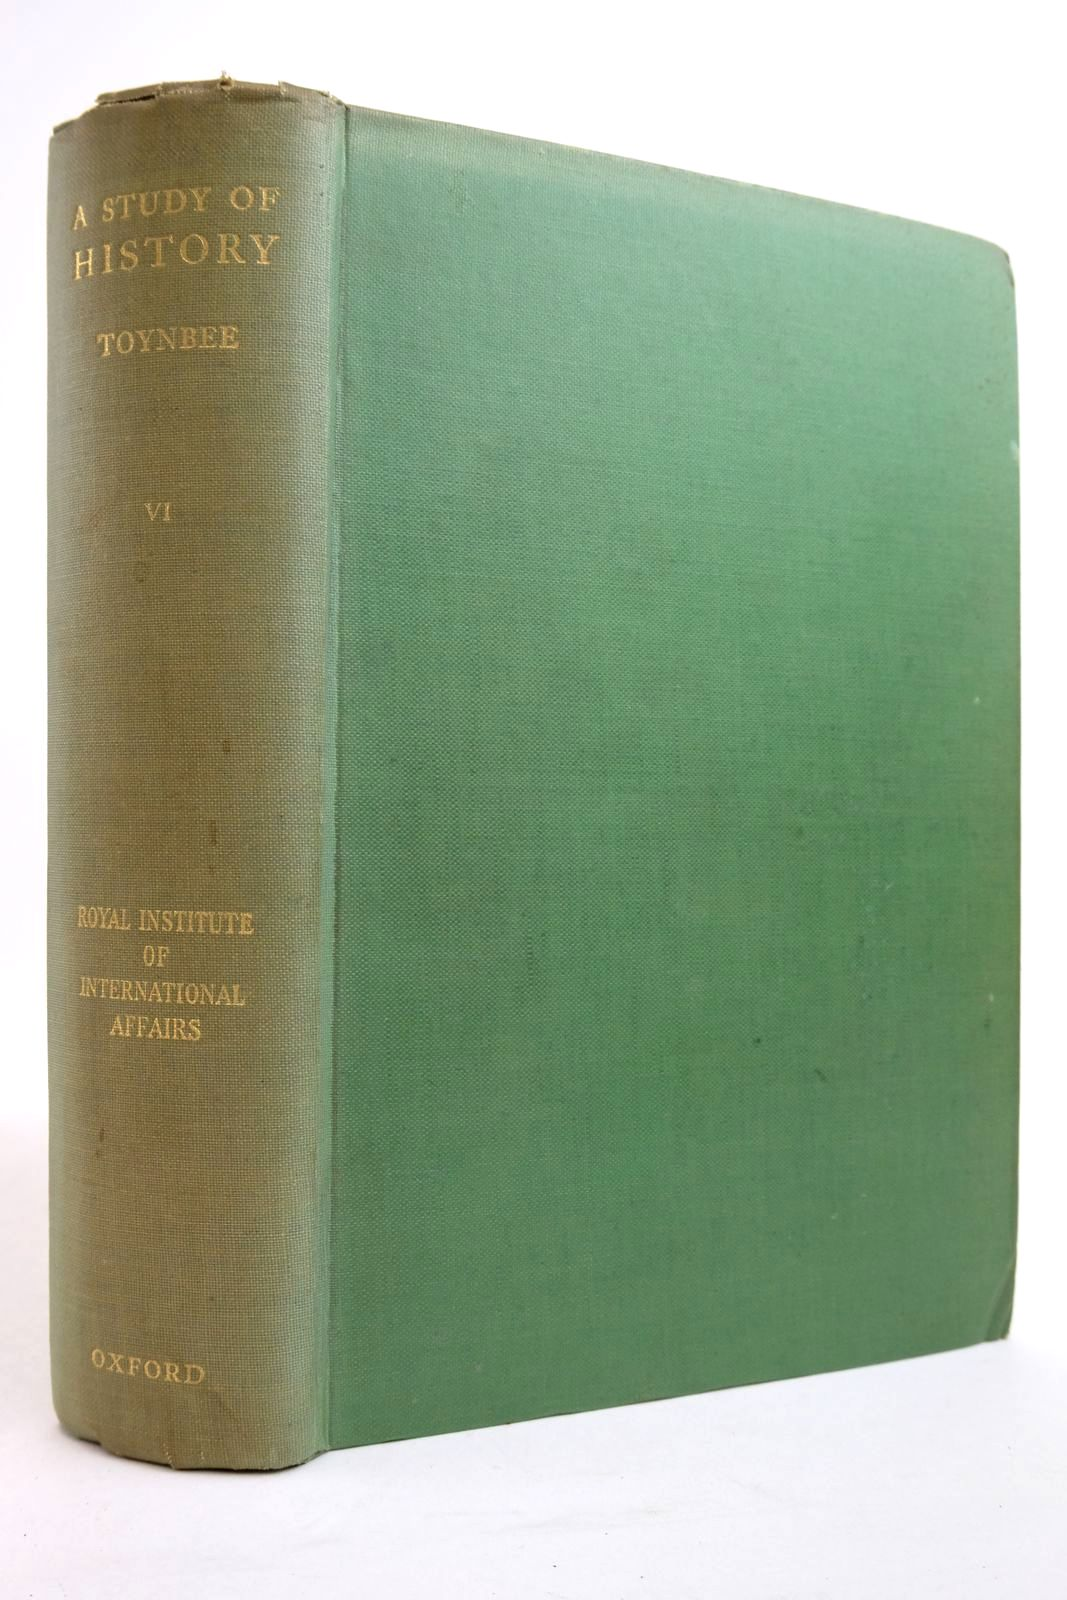 Photo of A STUDY OF HISTORY VOLUME VI- Stock Number: 2134956